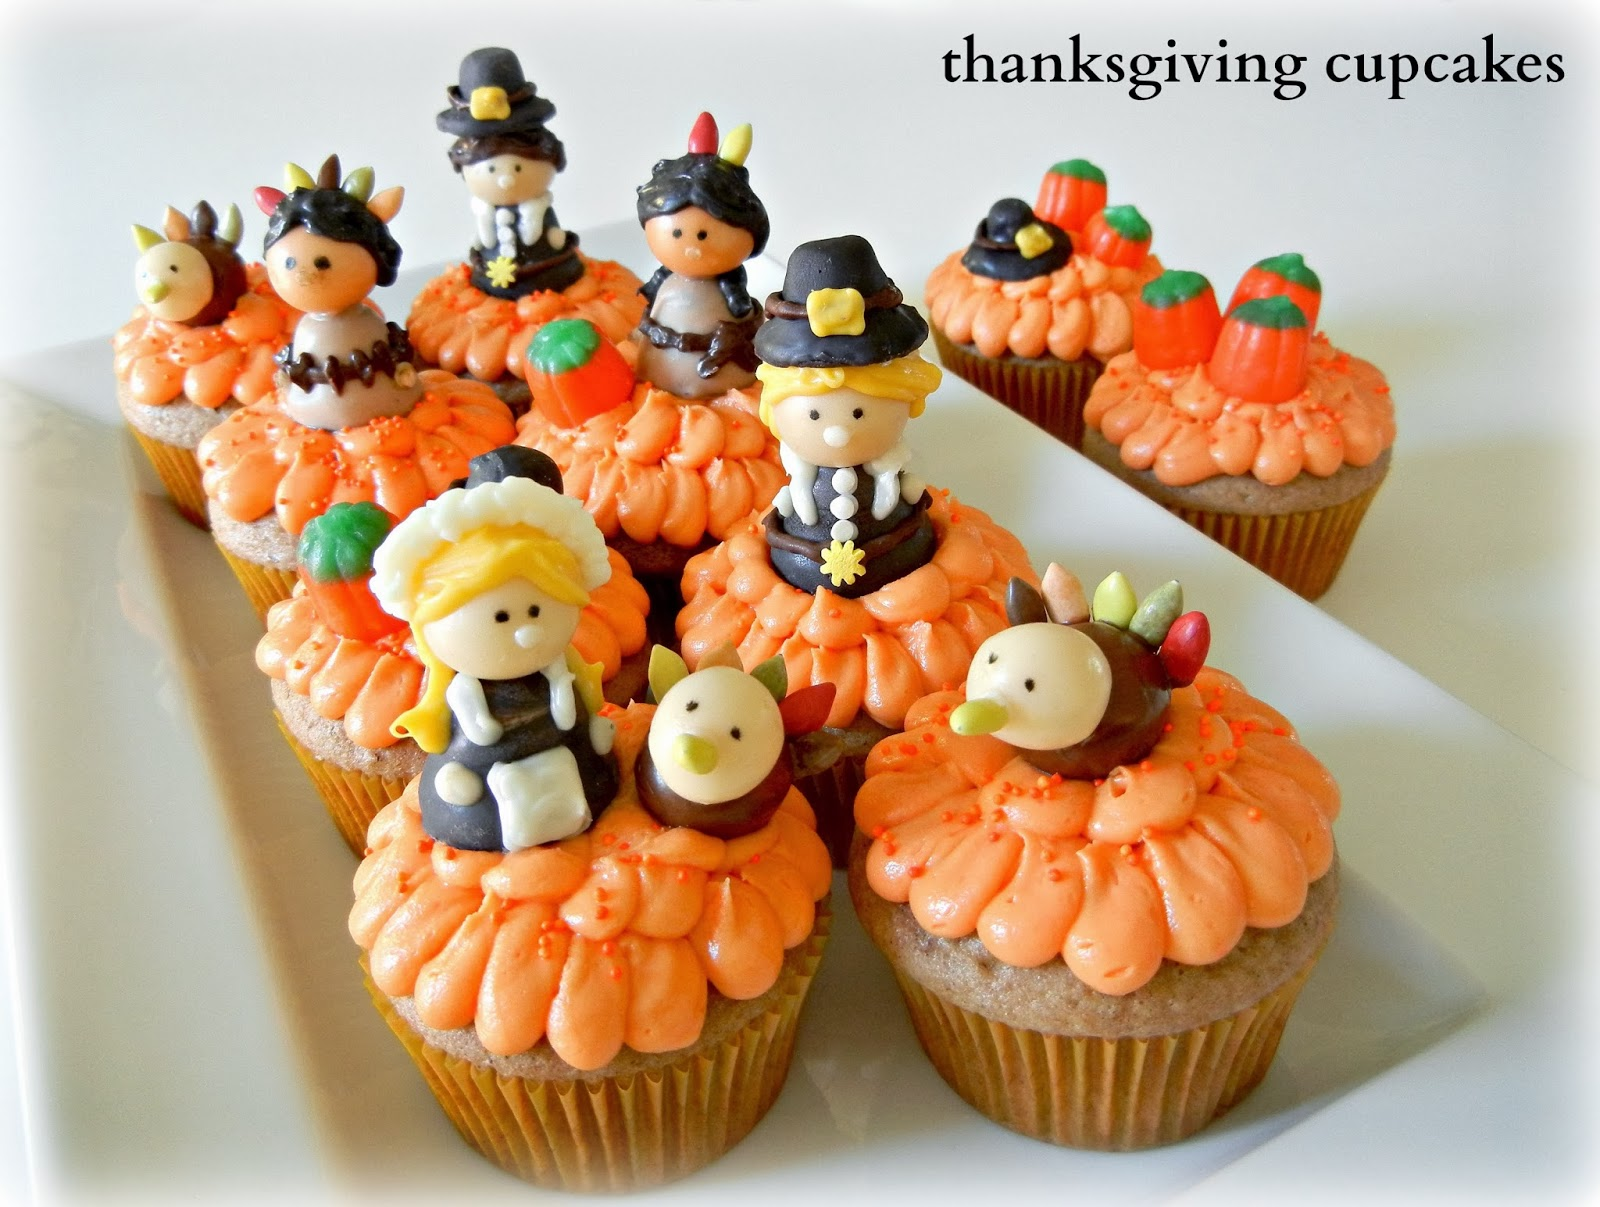 8 Photos of Thanksgiving Pilgrim Cupcakes